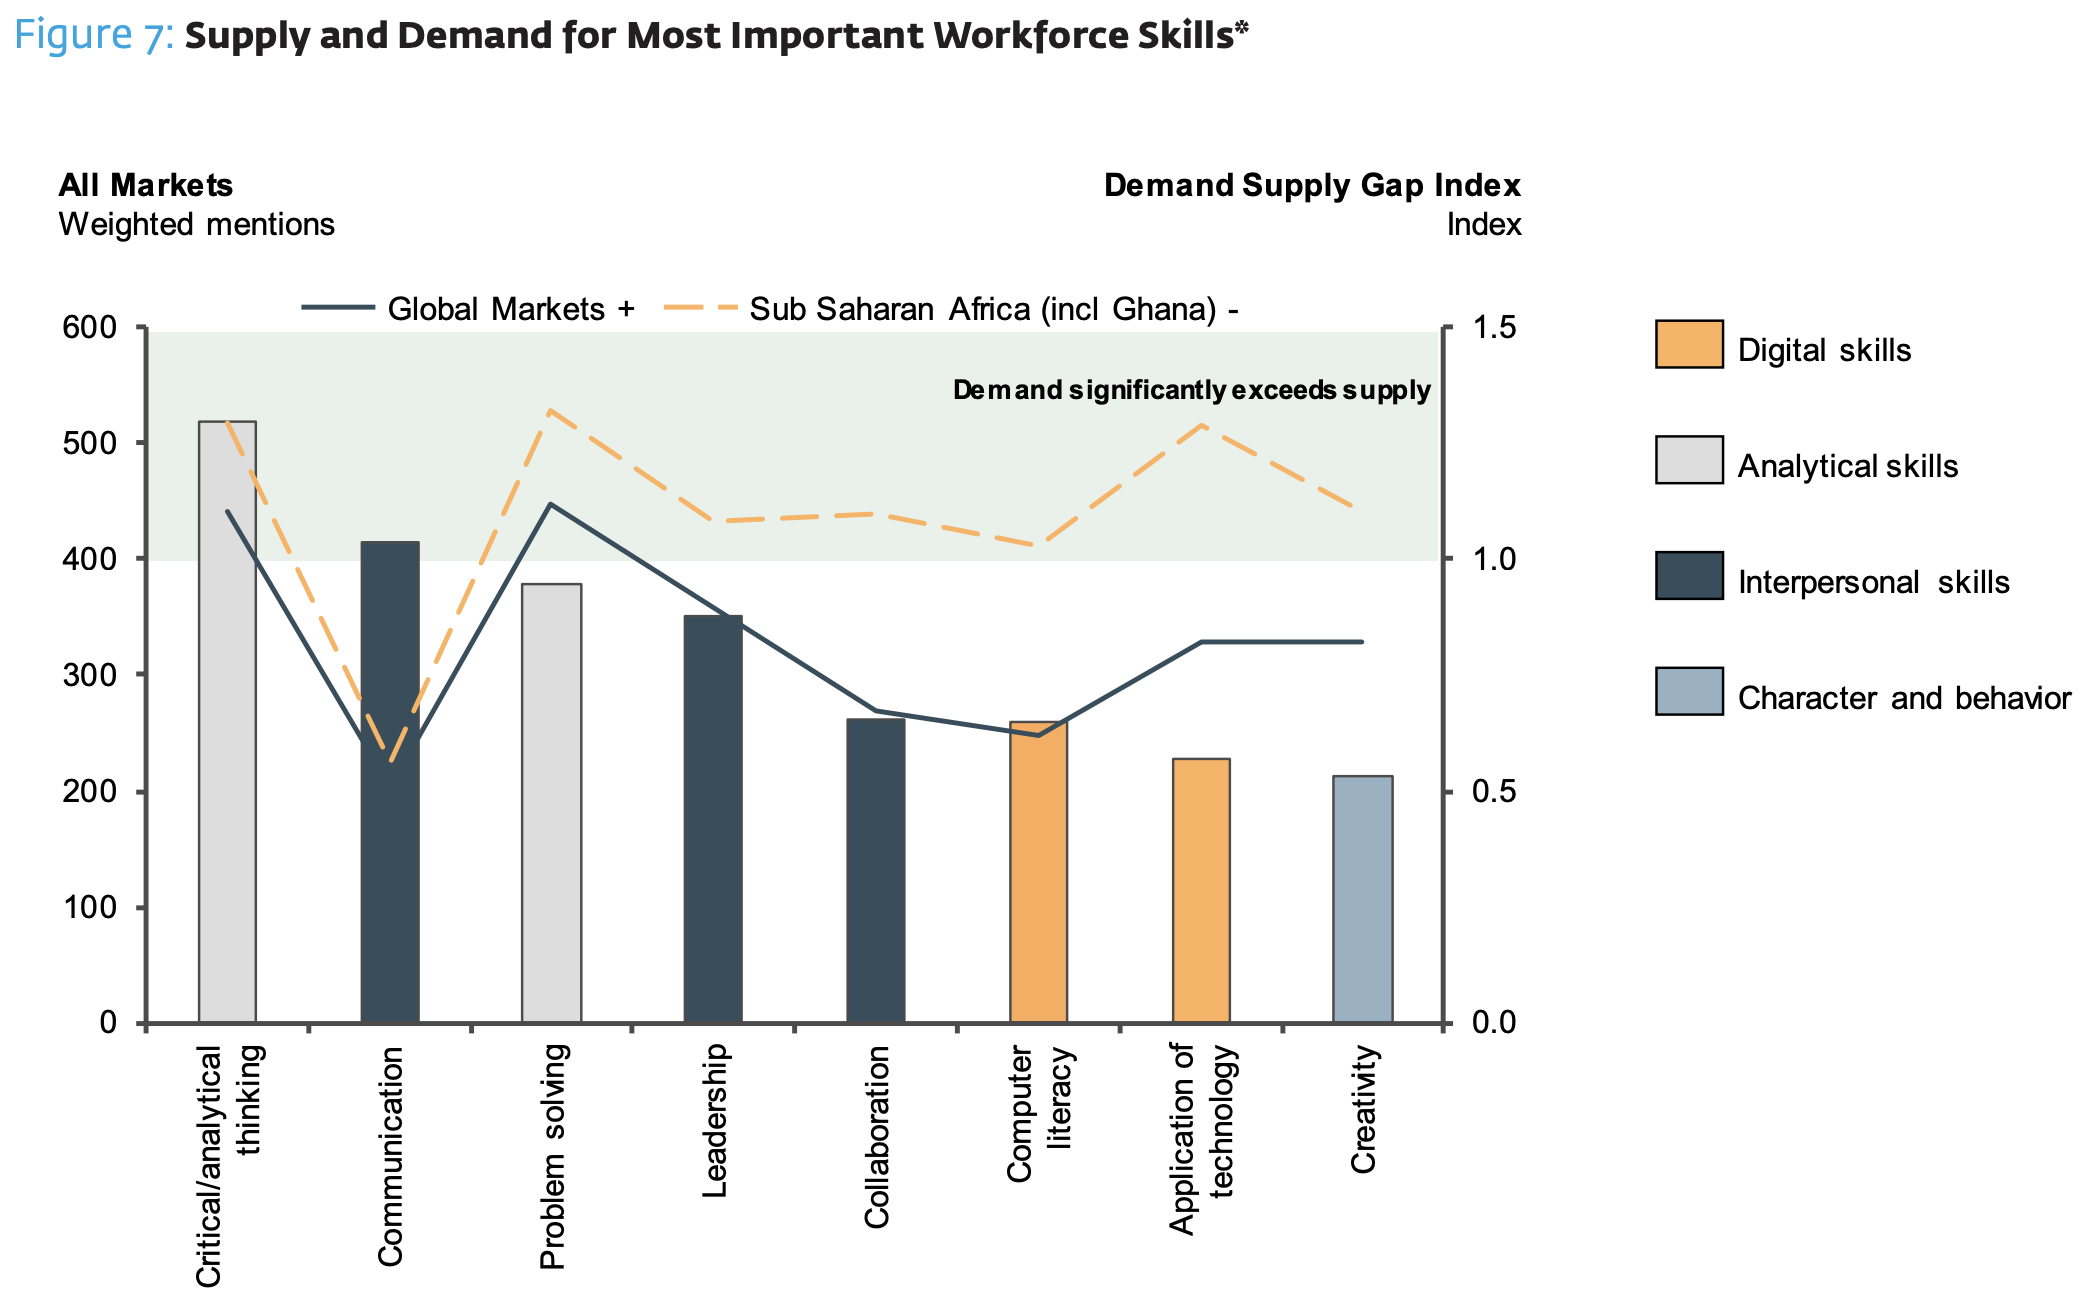 Demand for digital skills far outstrips supply in Sub-Saharan Africa